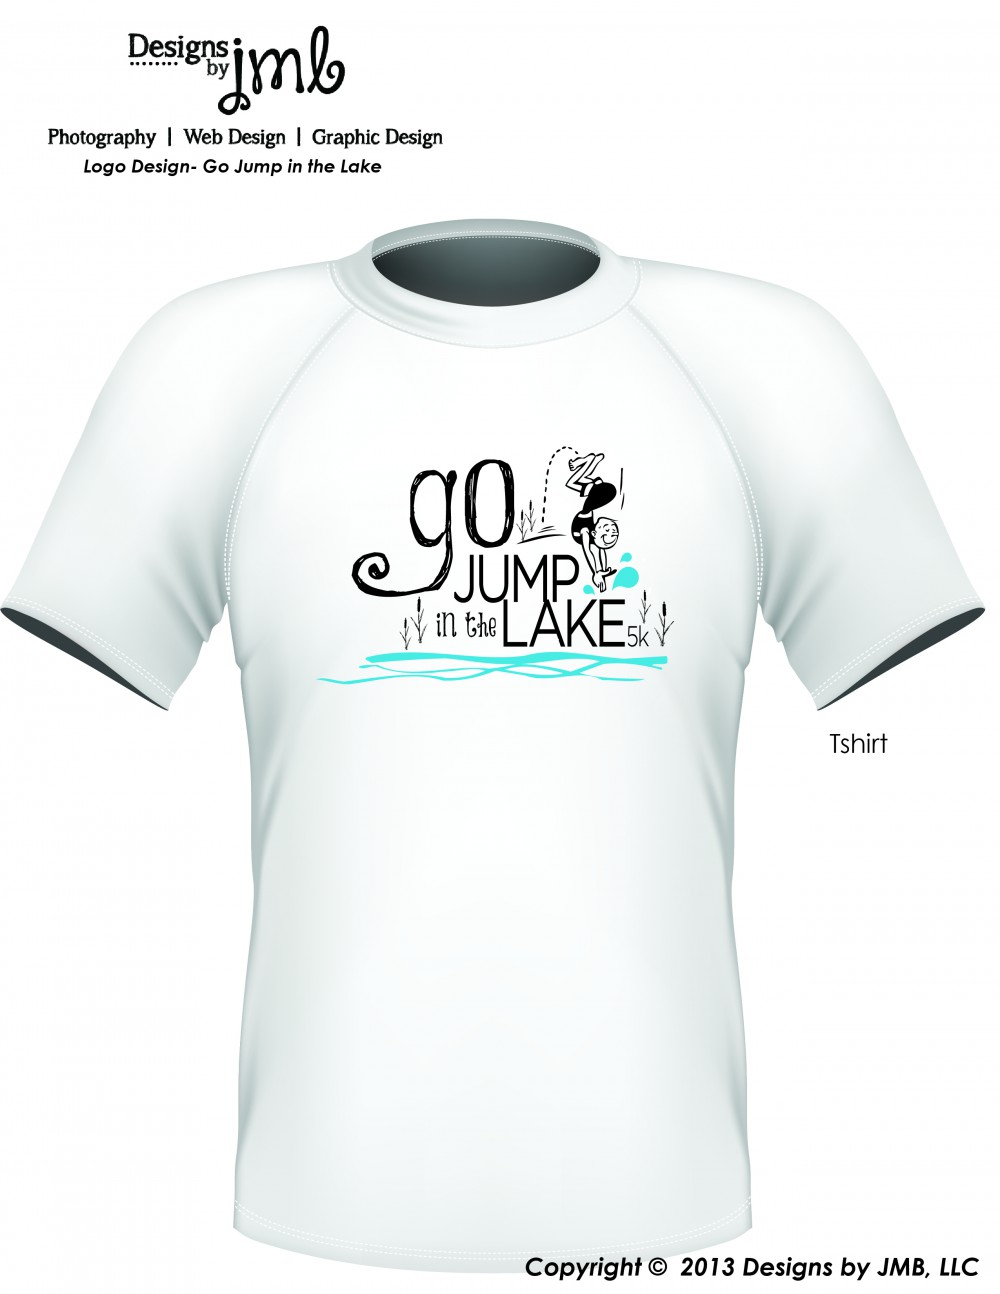 Go-Jump-in-the-Lake-Shirt